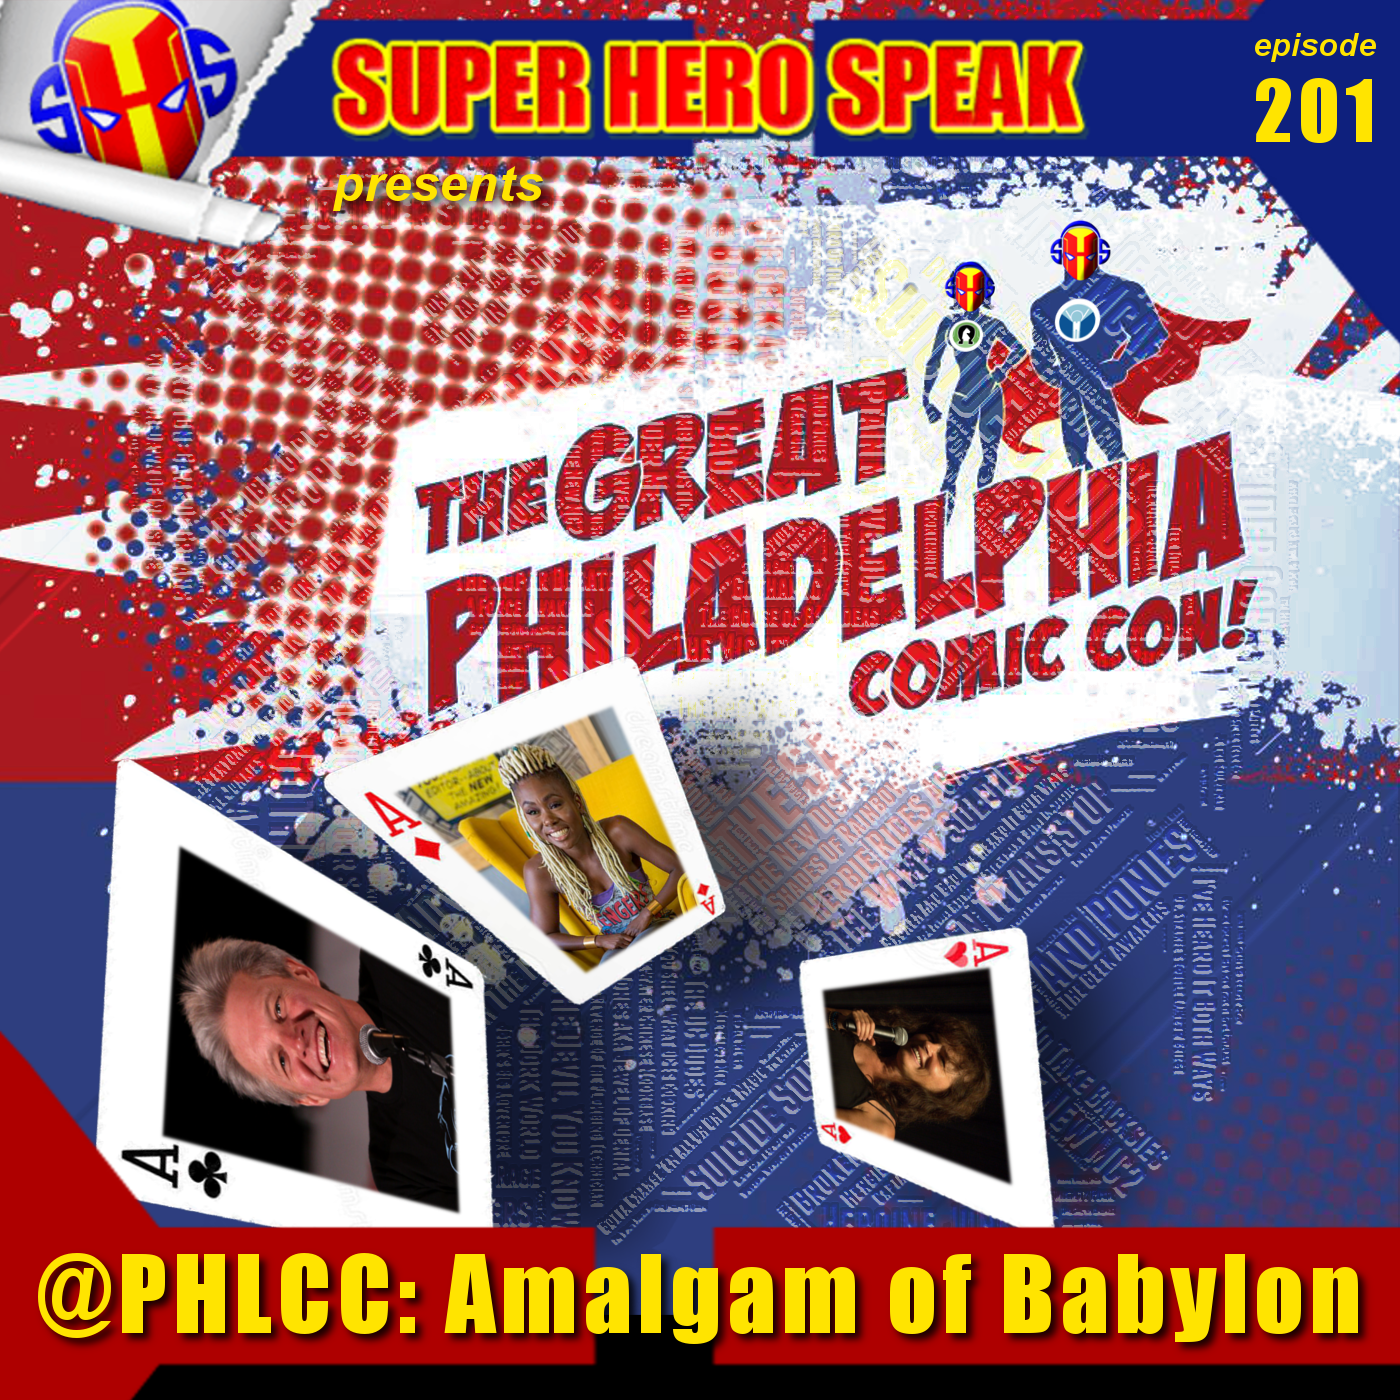 #201: @phlcc Amalgam of Babylon